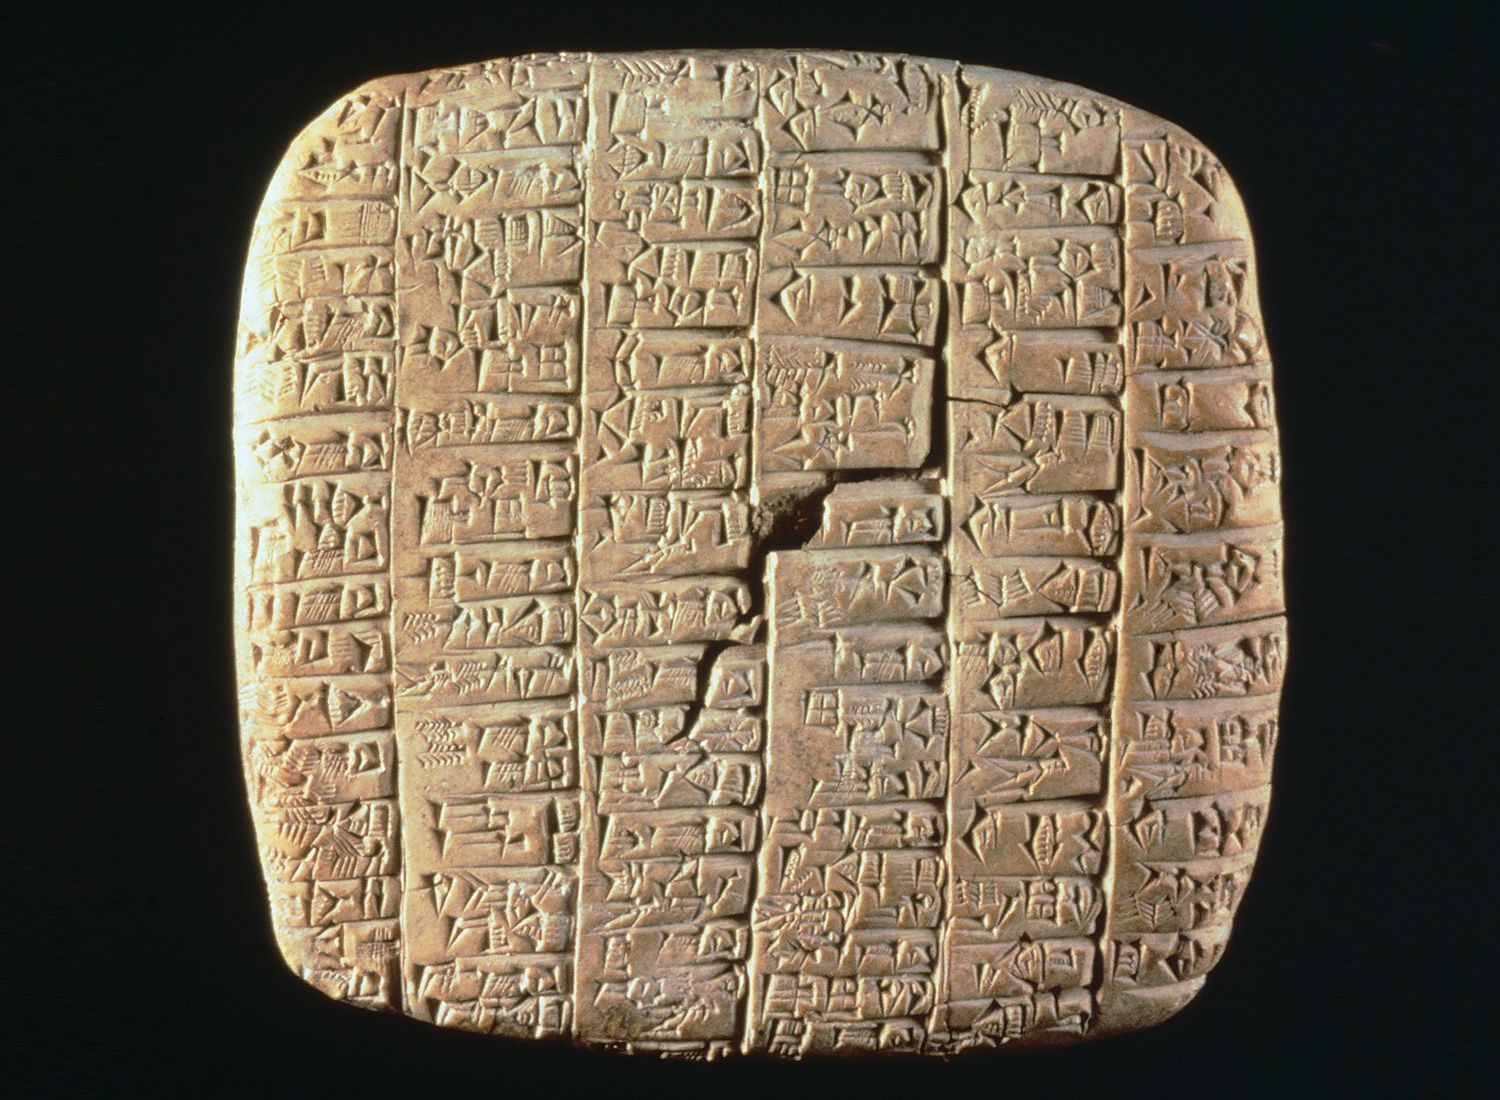 A clay tablet discovered at Ebla engraved with cuneiform characters, third millennium BC.